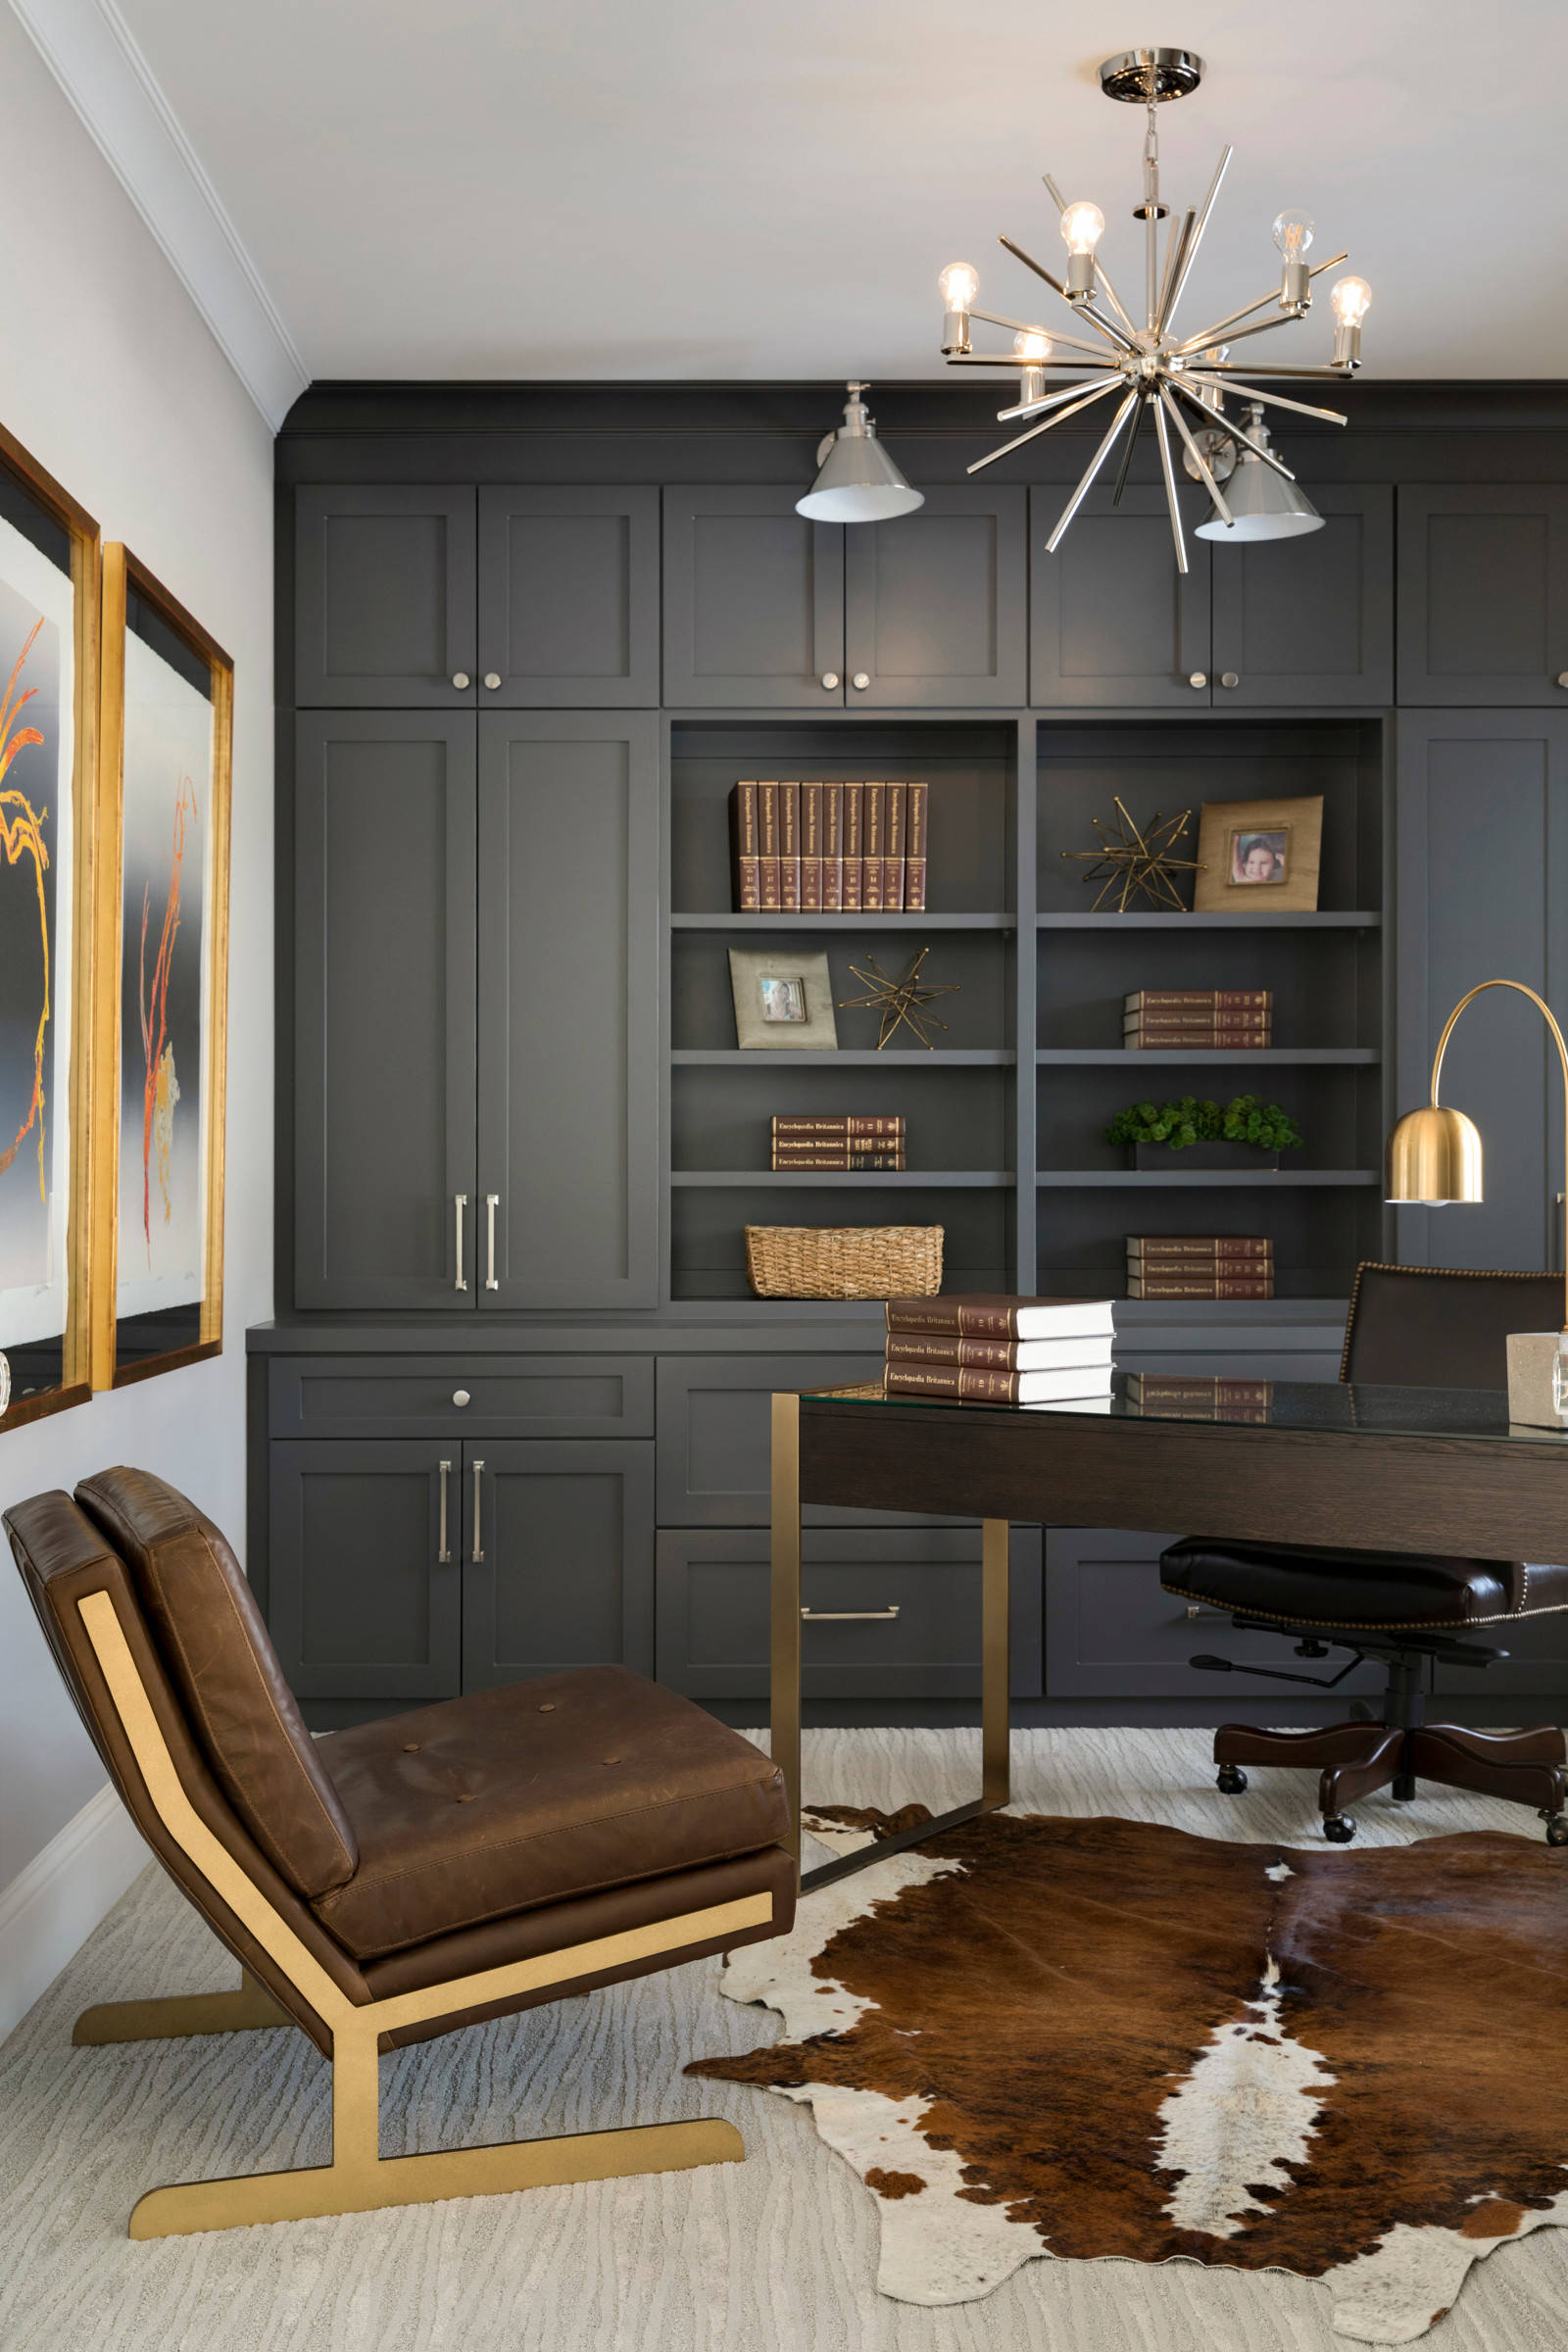 75 Beautiful Home Office Pictures Ideas September 2020 Houzz